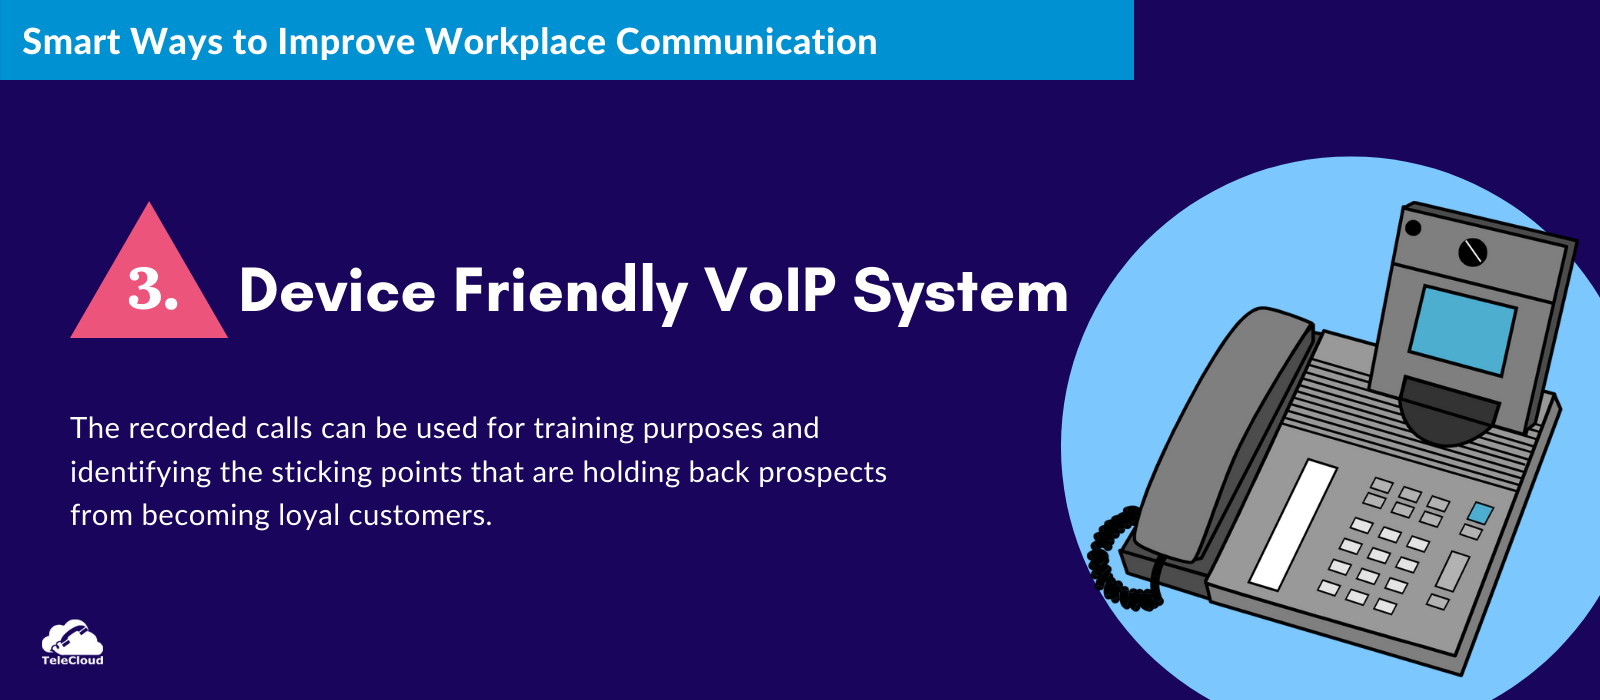 VoIP System to Improve Workplace Communication - TeleCloud